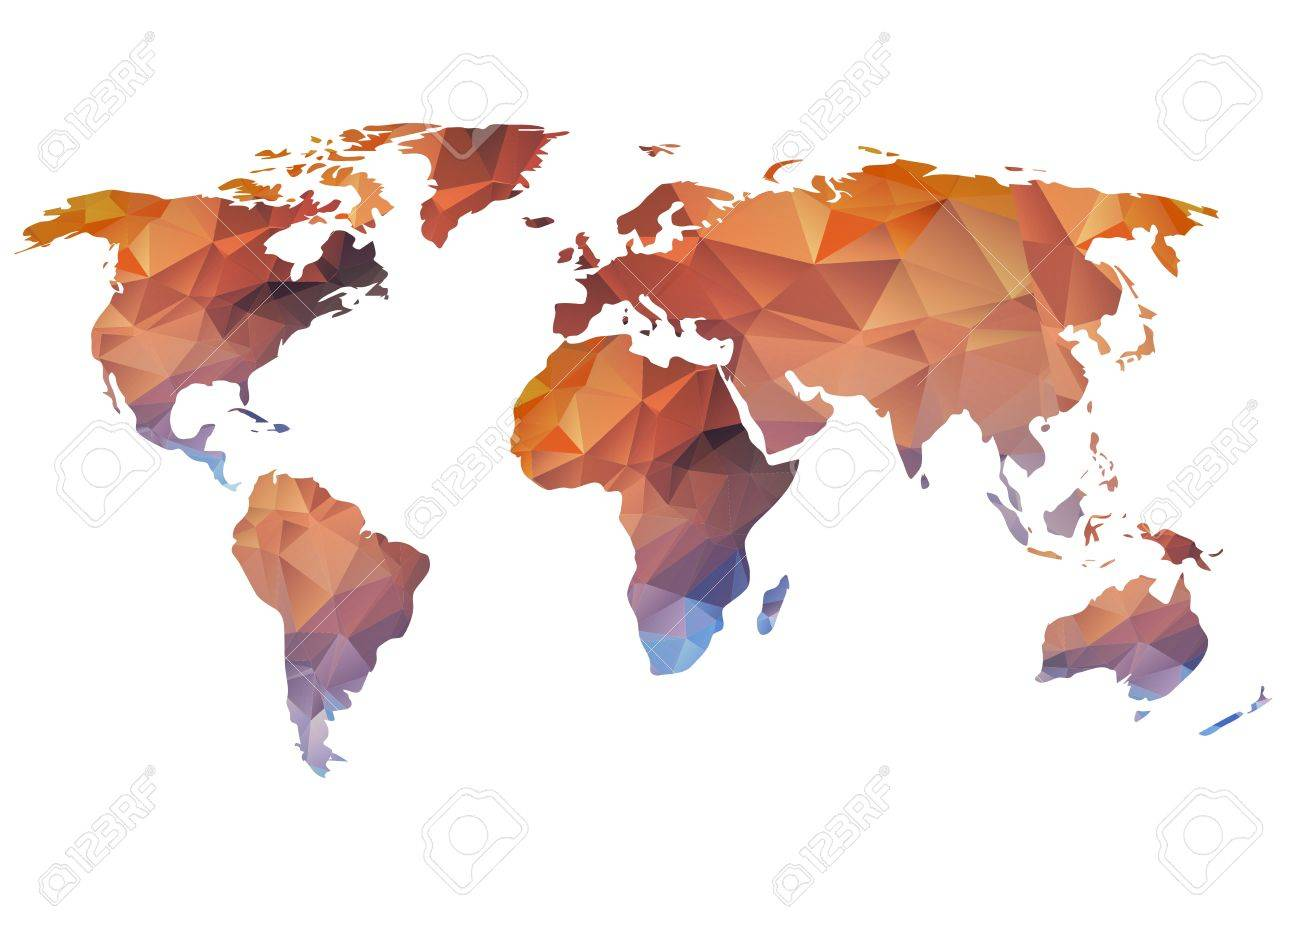 World map background in polygonal style can be used for website world map background in polygonal style can be used for website info graphics gumiabroncs Gallery